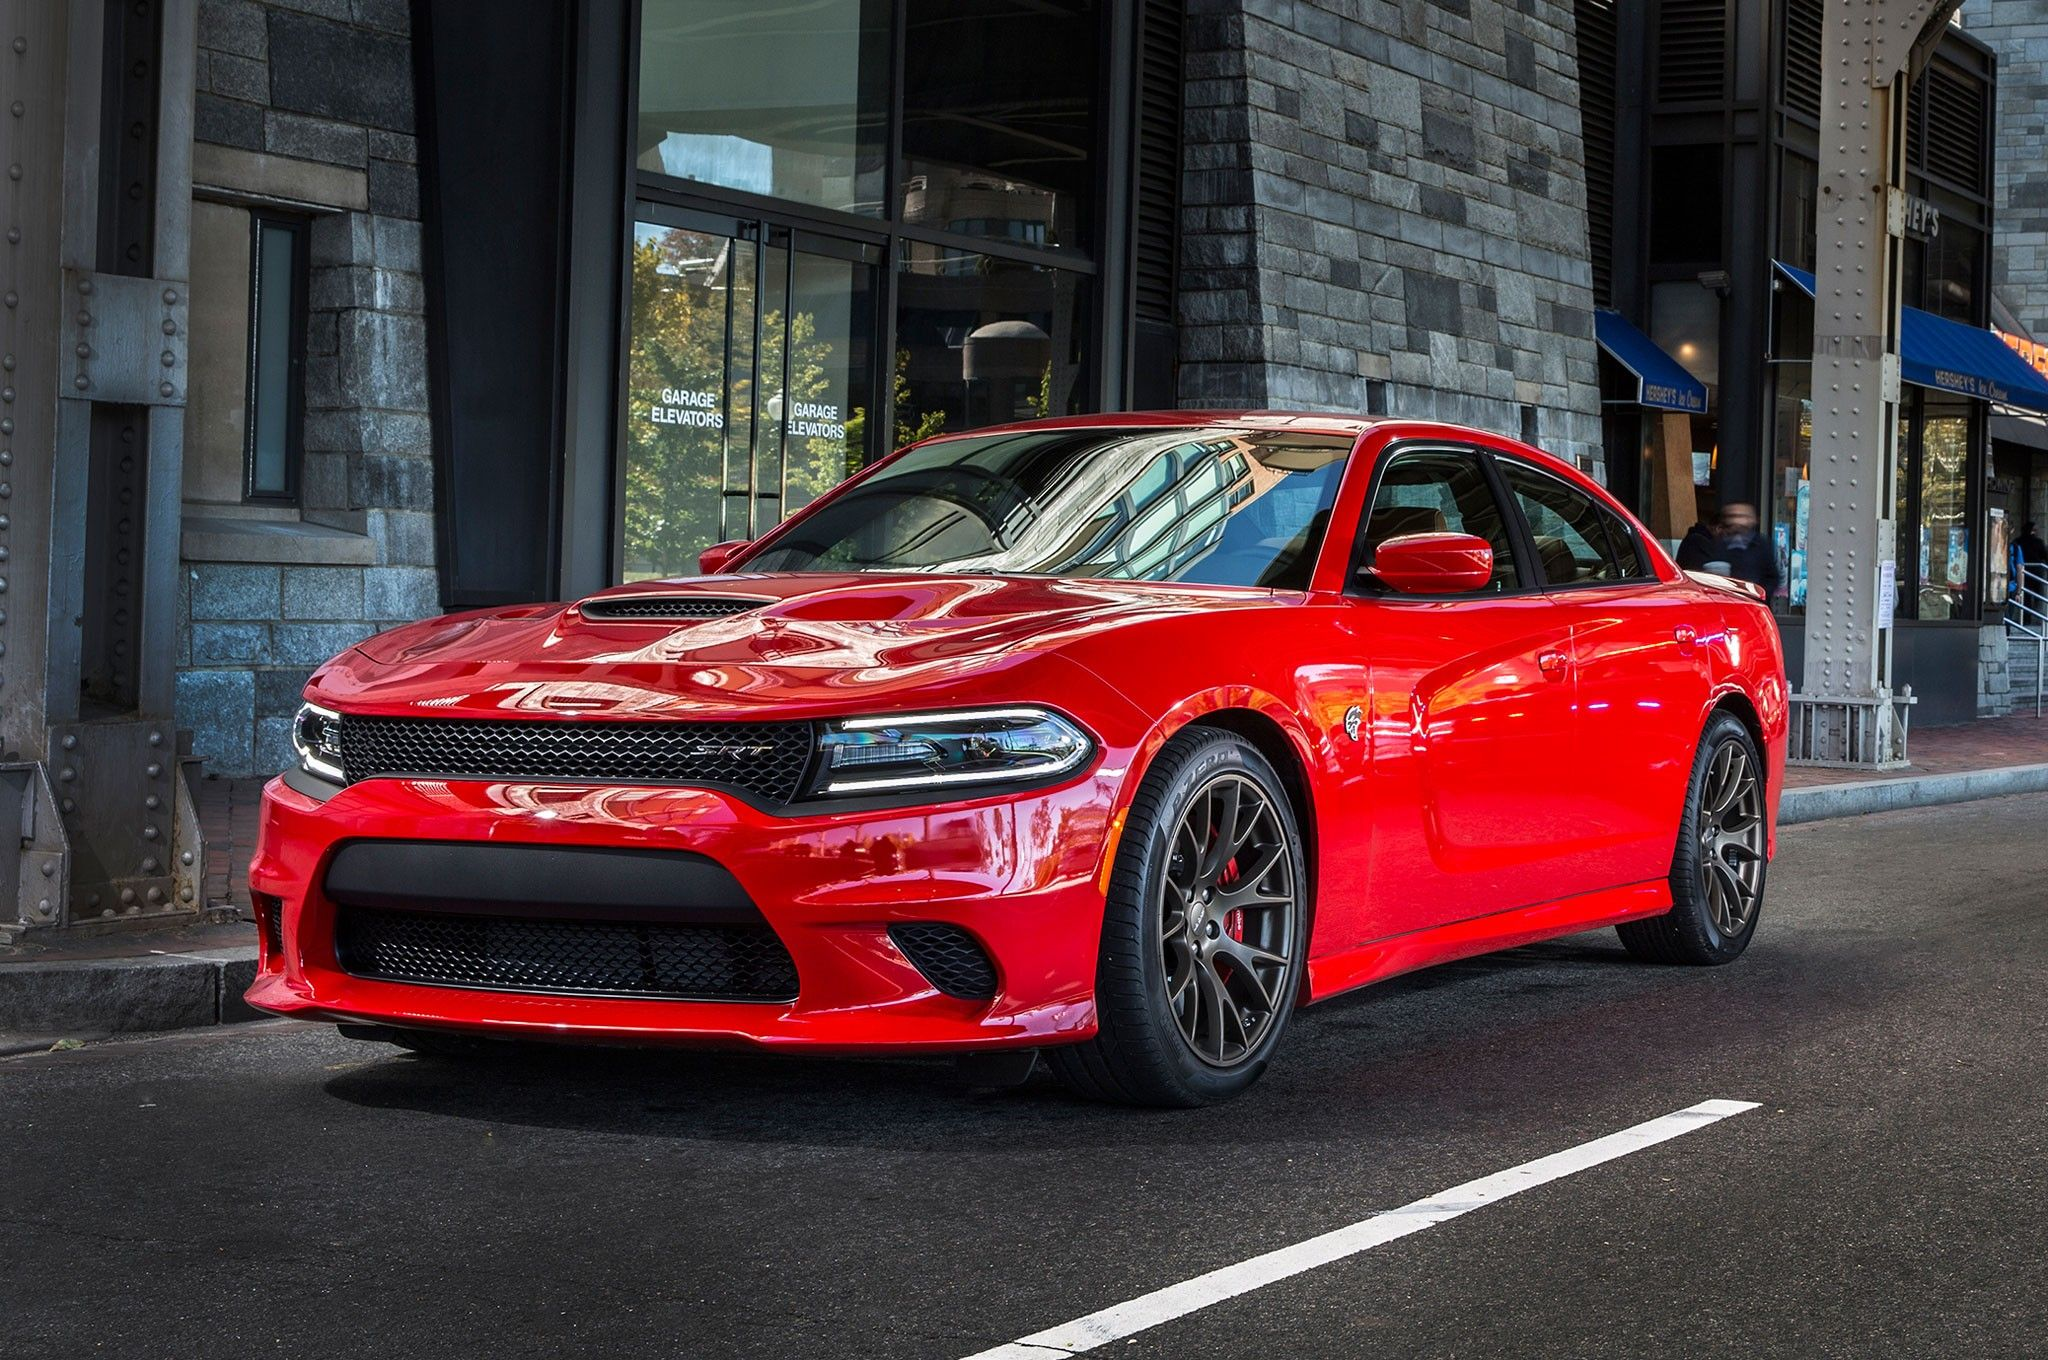 2017 Dodge Charger Dodge Charger Cool Sports Cars Classic Cars